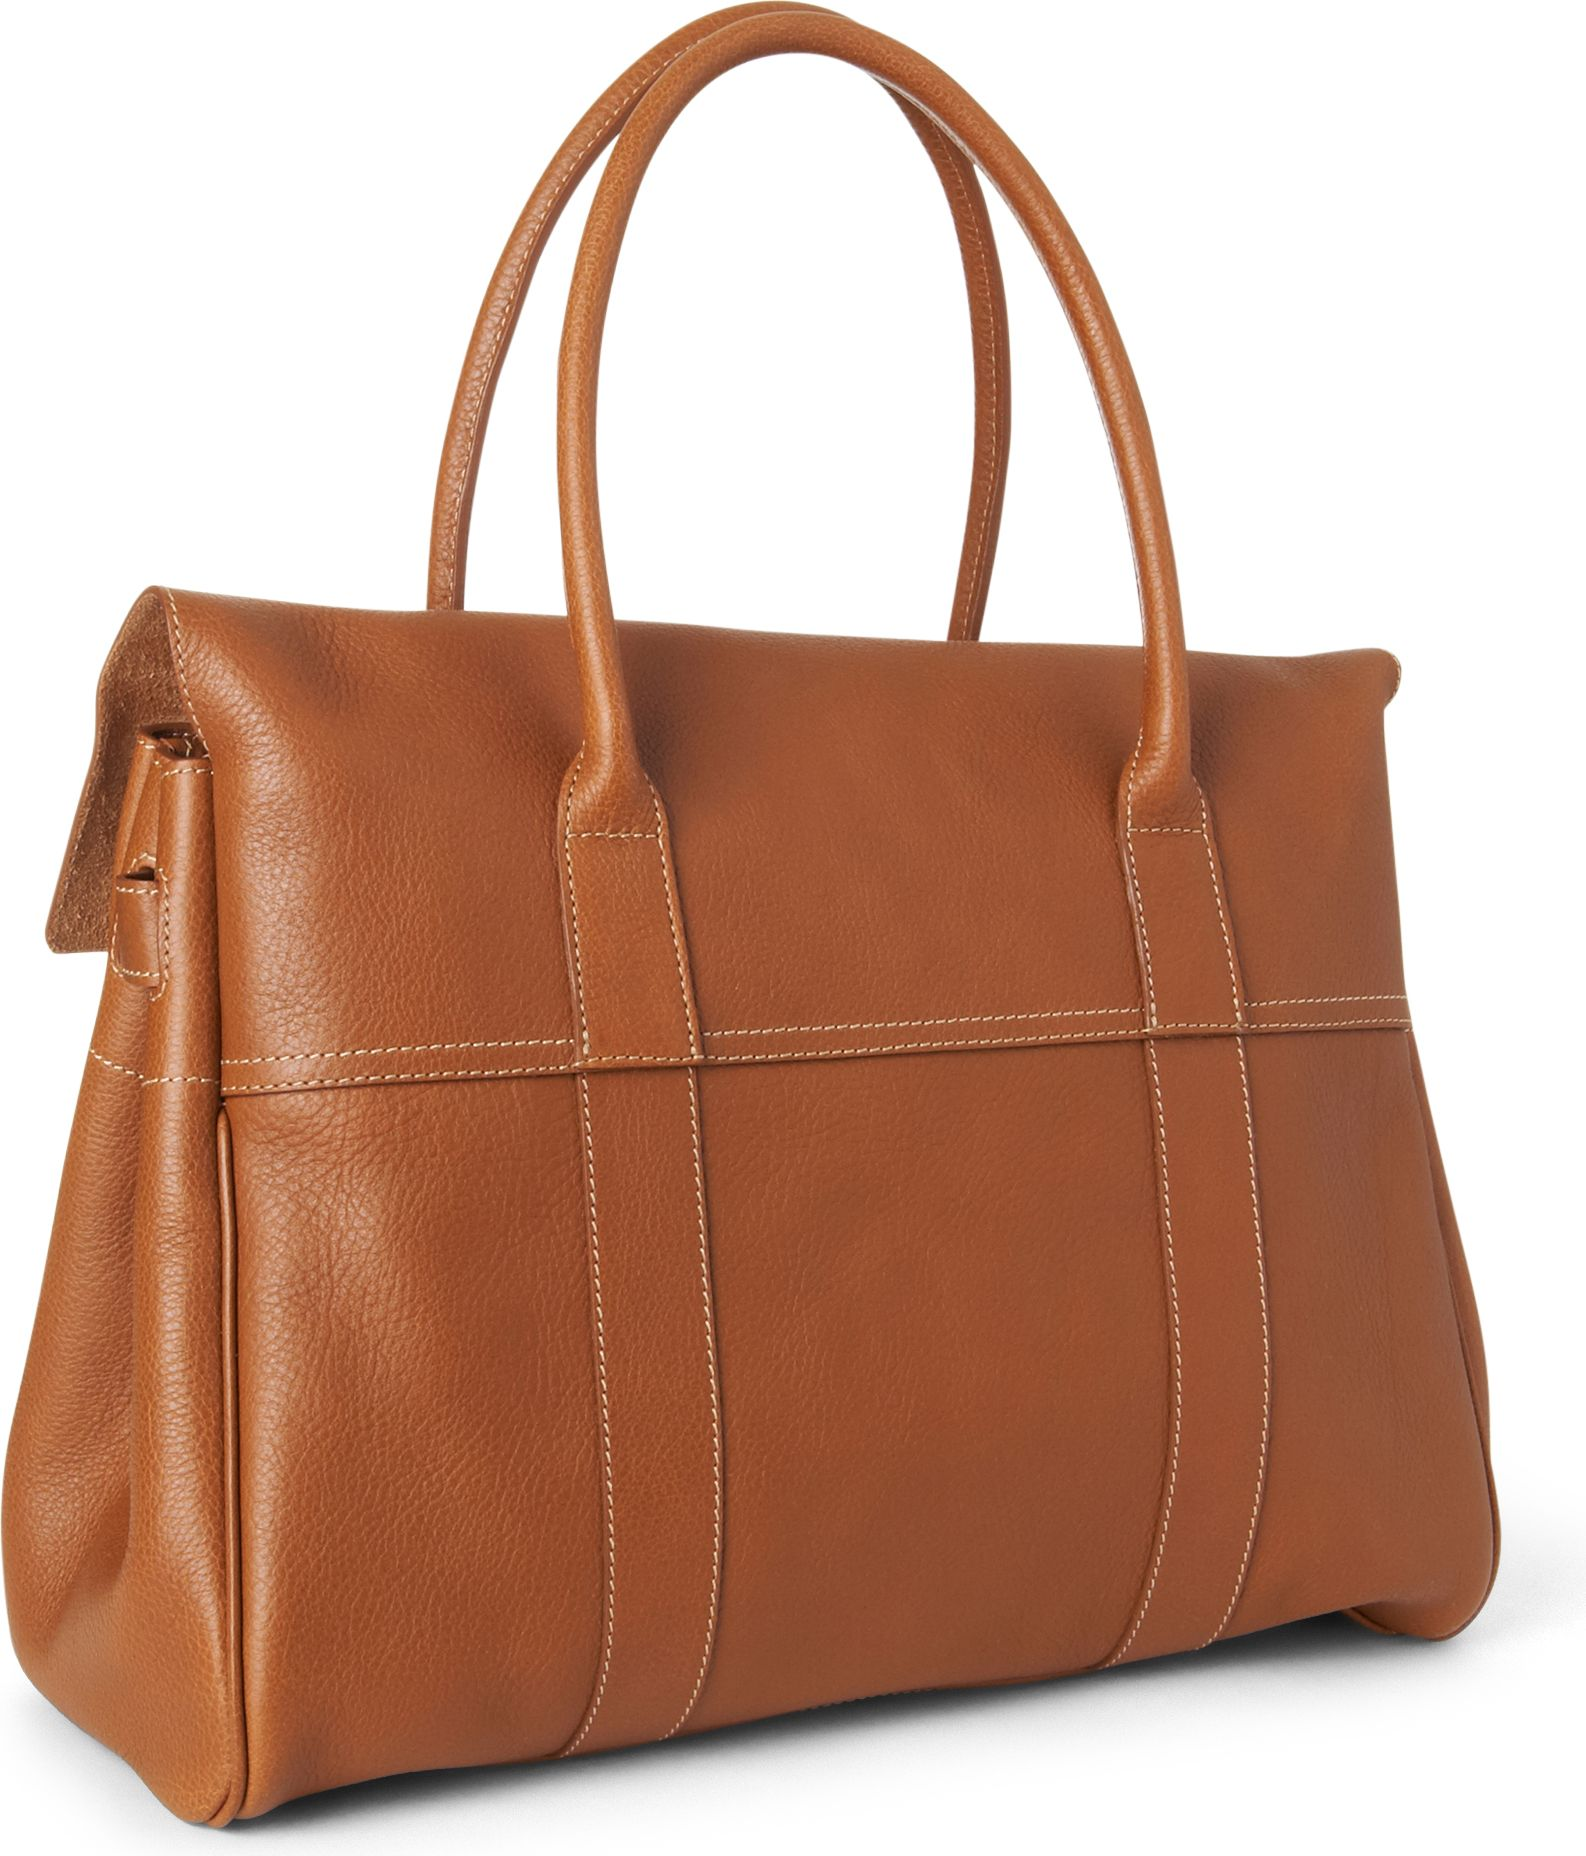 e9f053ee89e0 Lyst - Mulberry Bayswater Union Jack Handbag in Brown